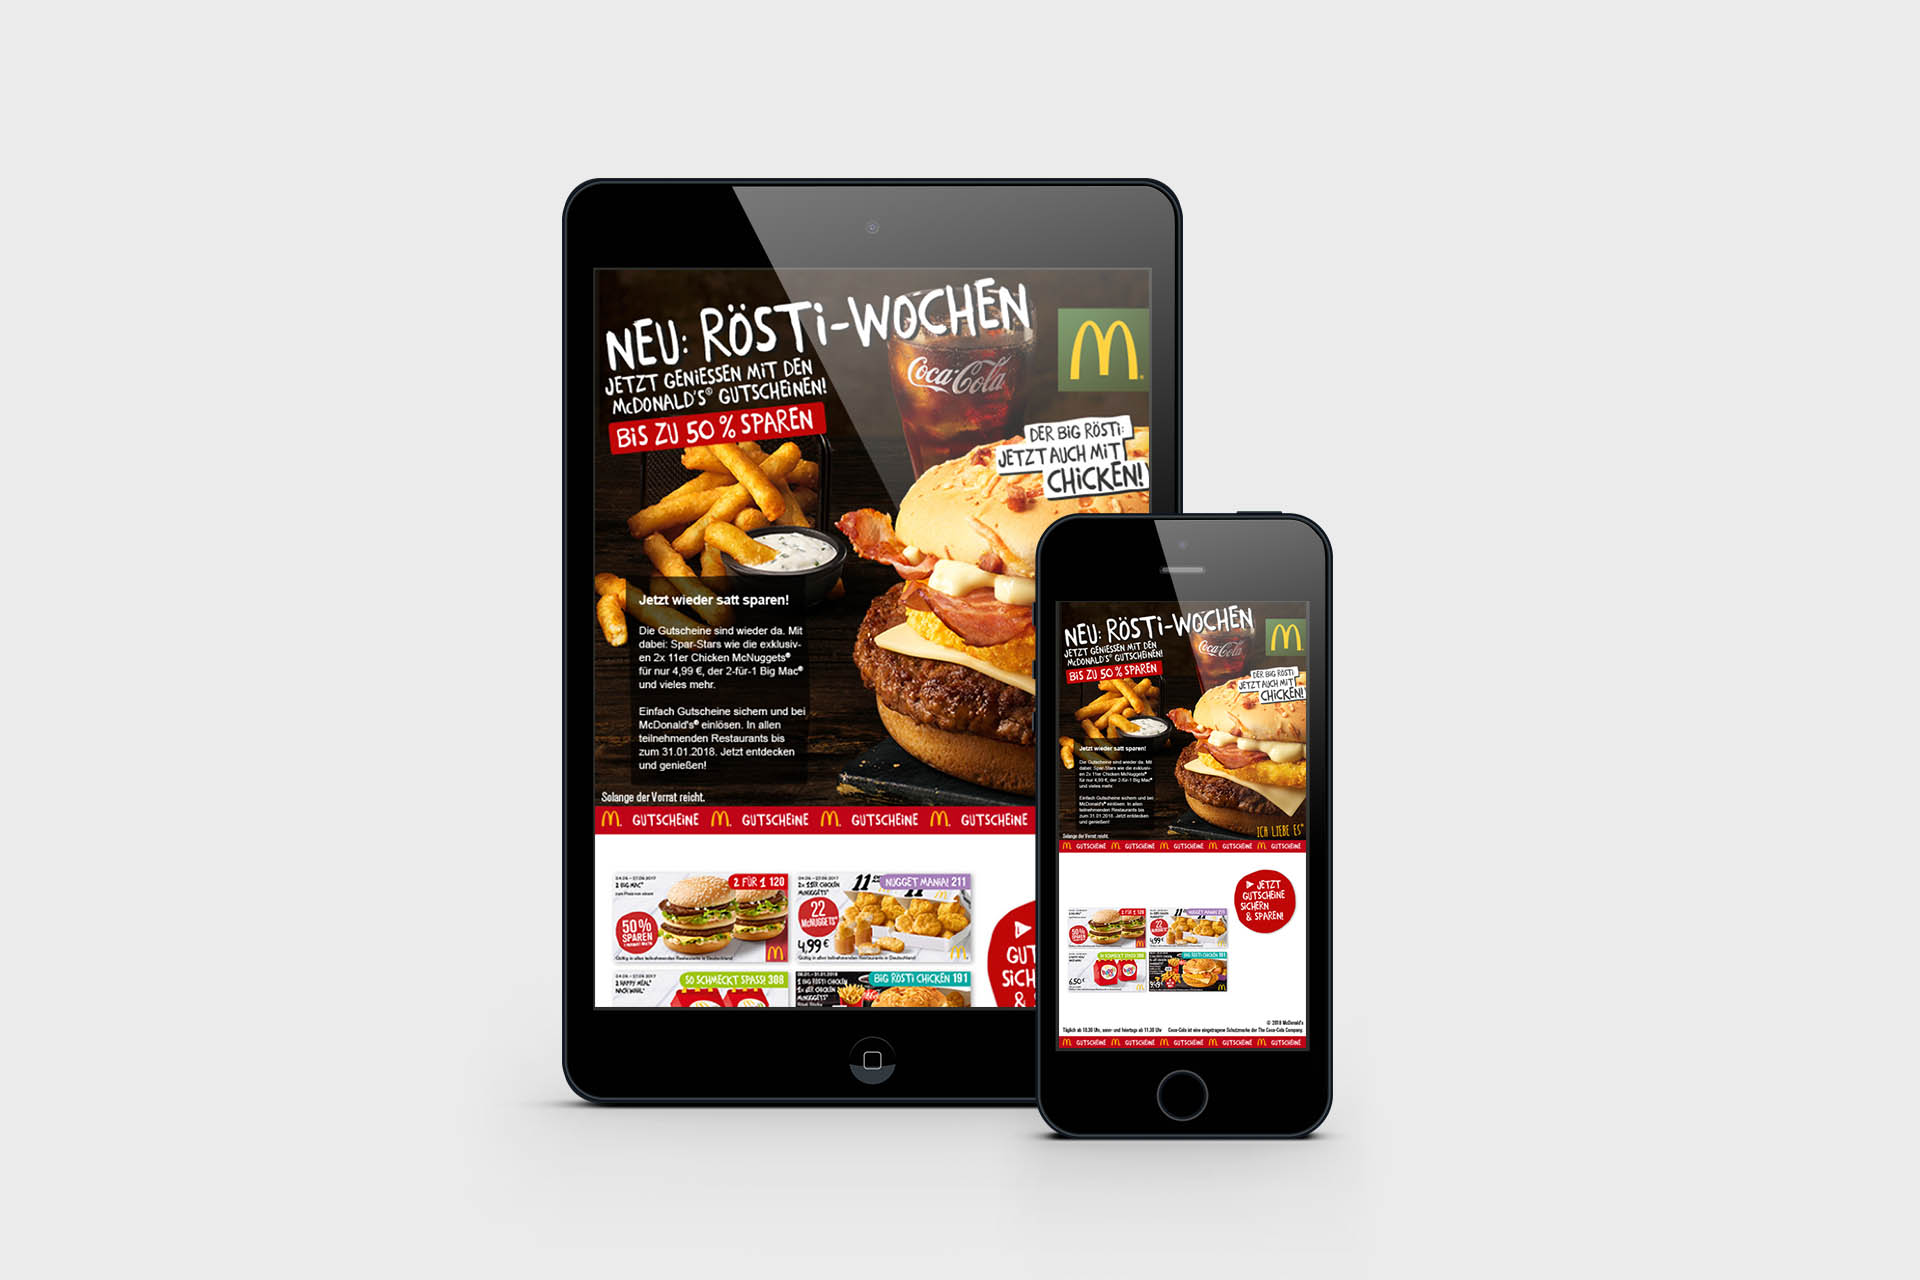 https://www.performance-werk.de/wp-content/uploads/2019/03/mockup_mcdonalds.jpg